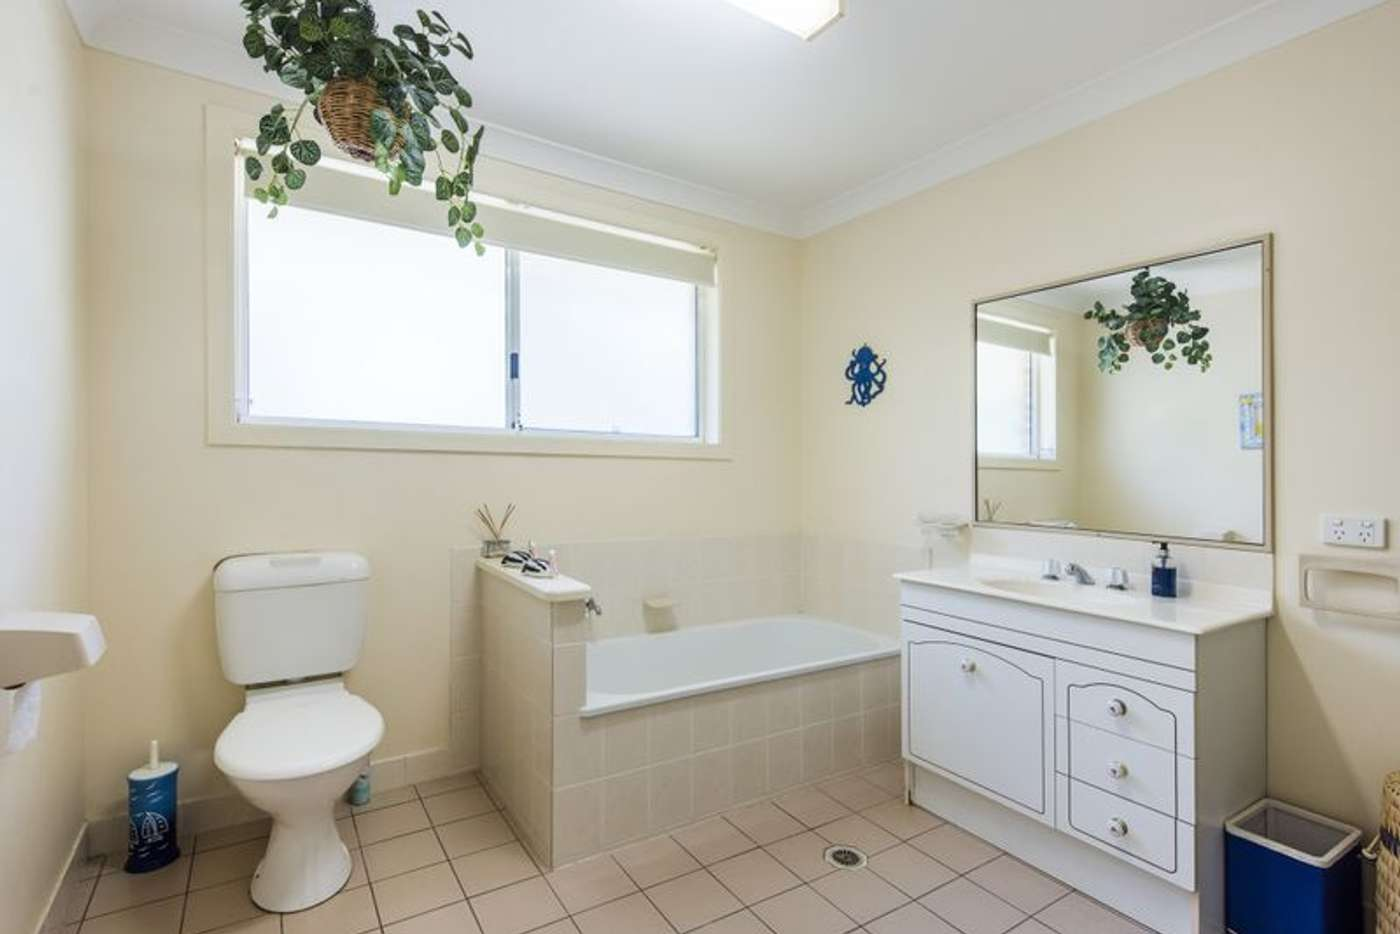 Seventh view of Homely unit listing, 5/98 Queen Street, Iluka NSW 2466